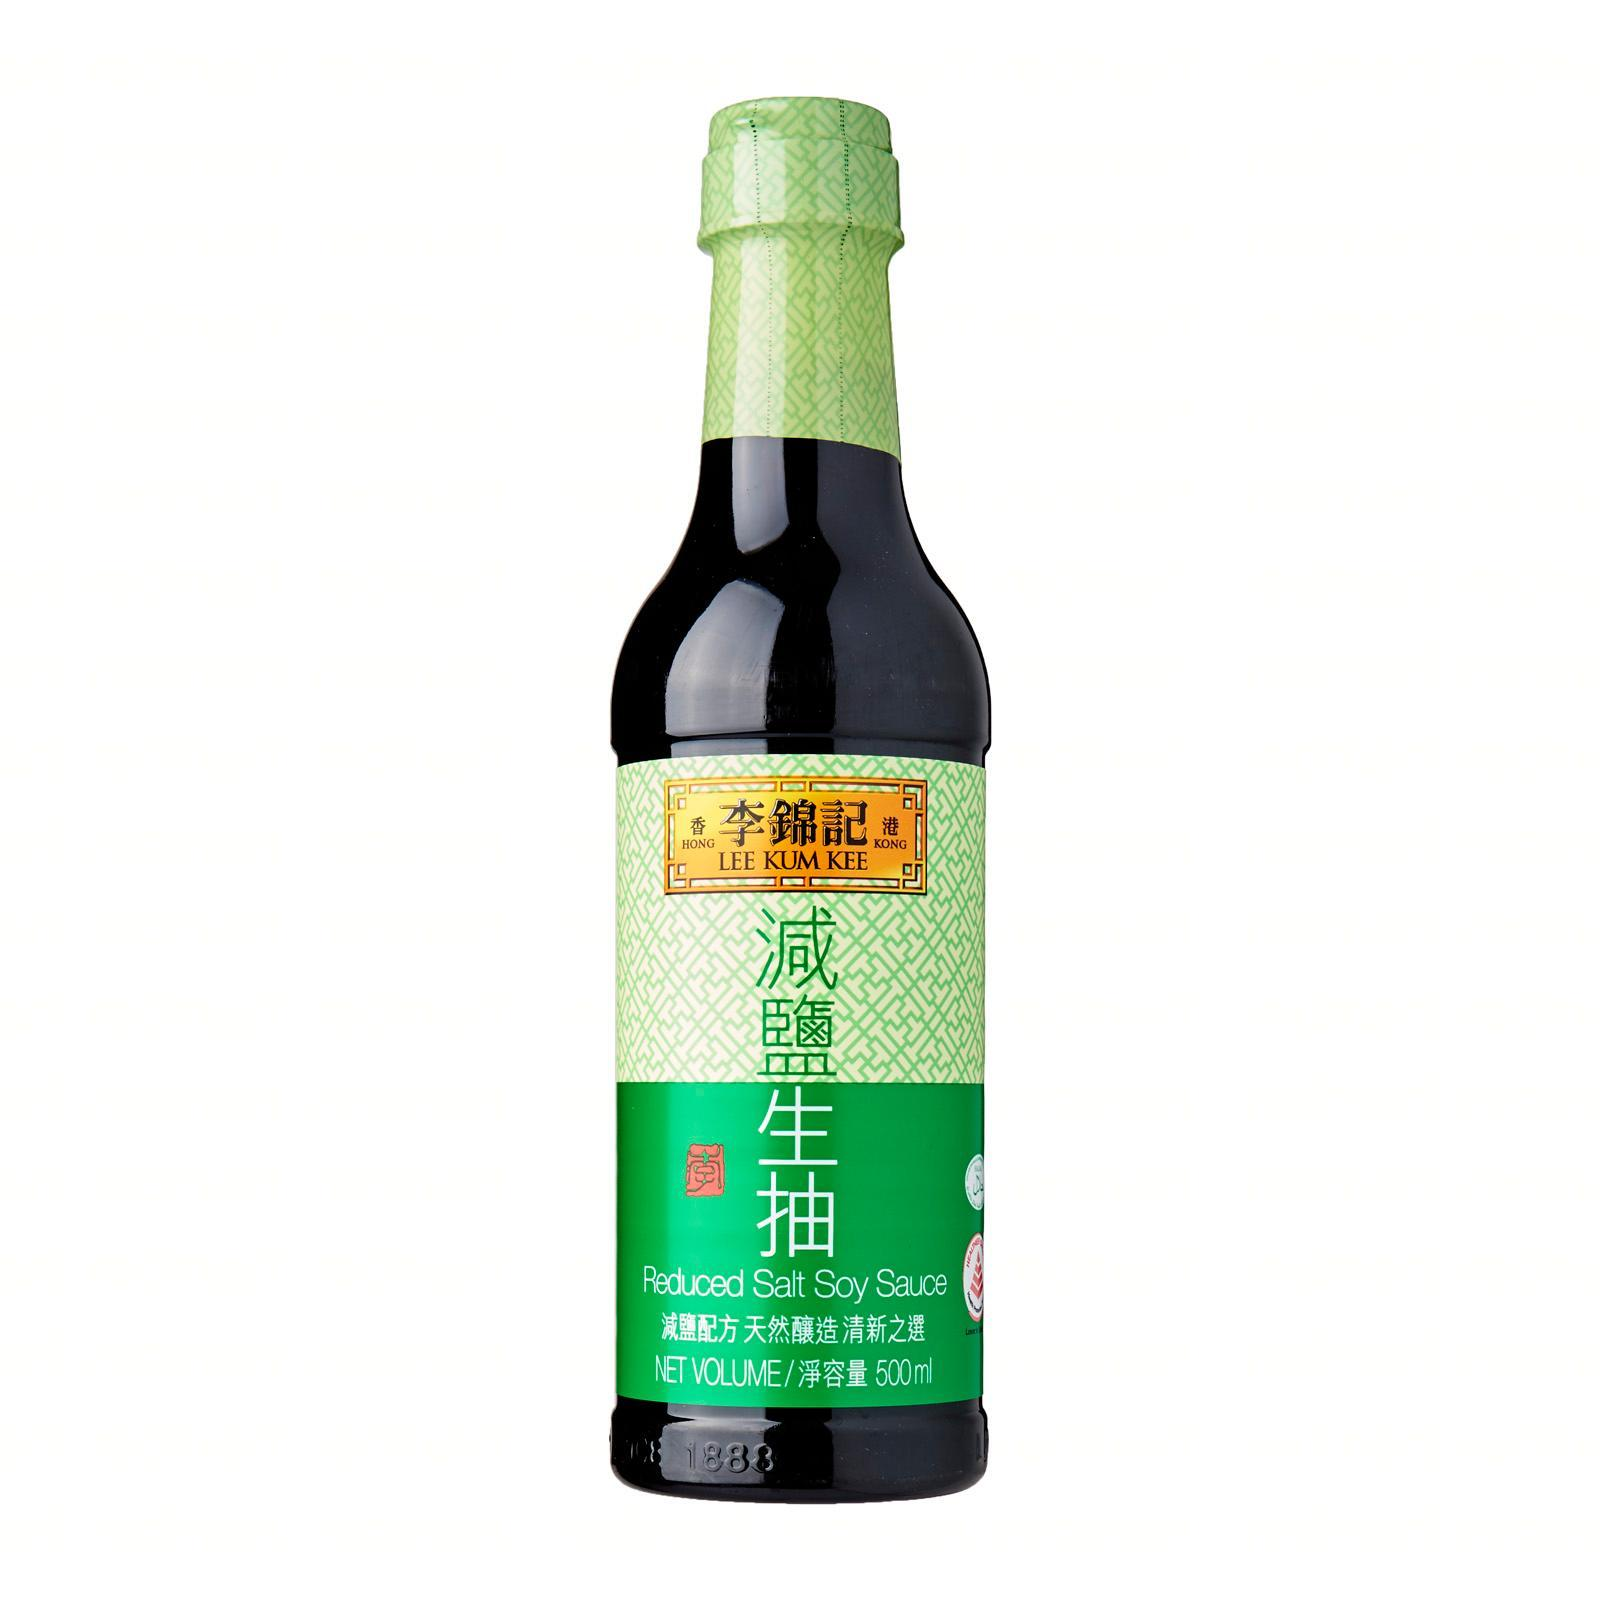 LEE KUM KEE Reduced Salt Soy Sauce 500ml